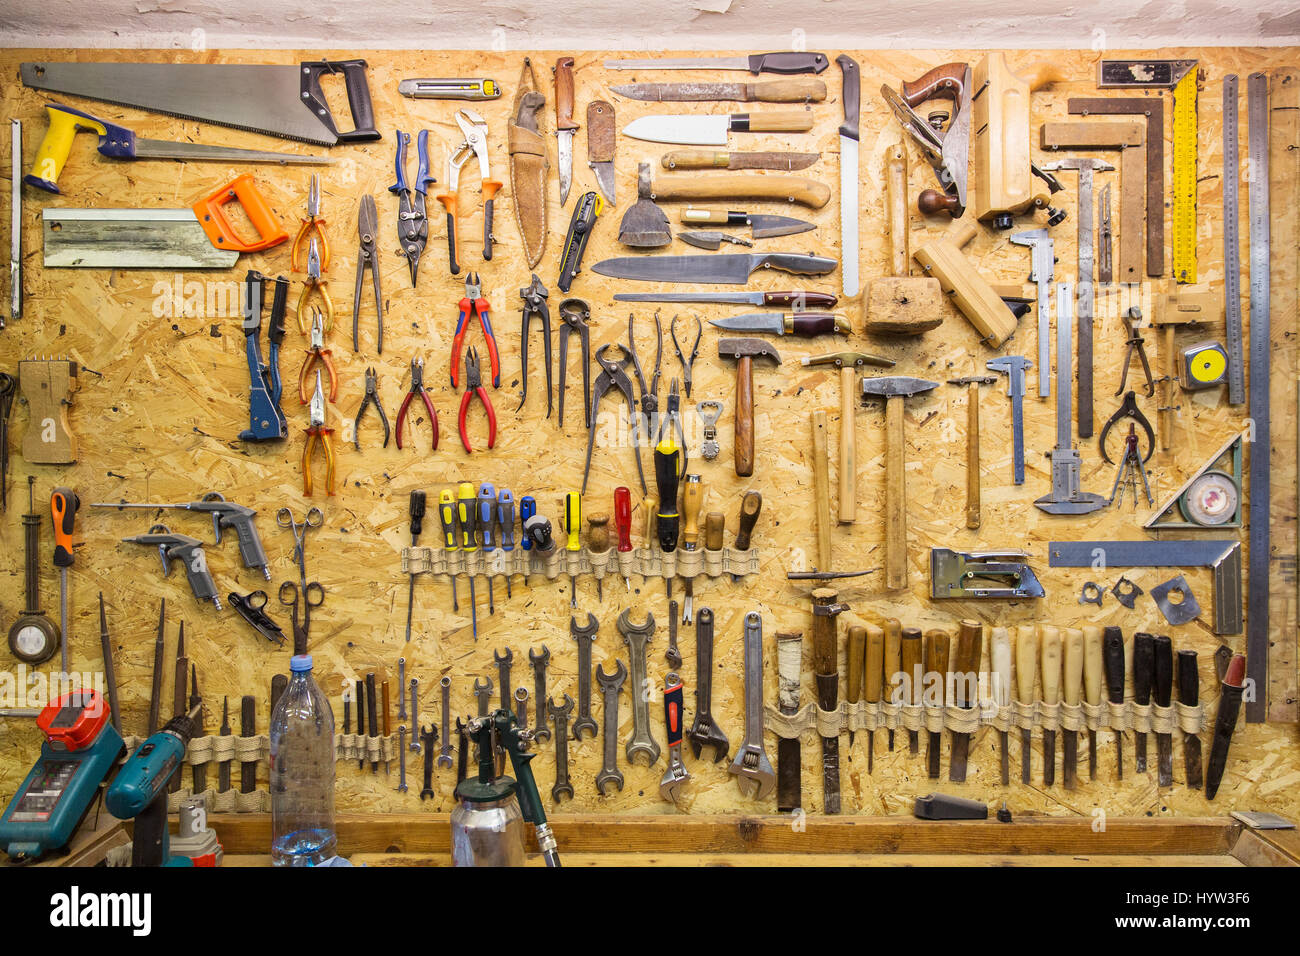 Schreinerei Clipart Work Tools Hanging On Wall At Workshop Stock Photo